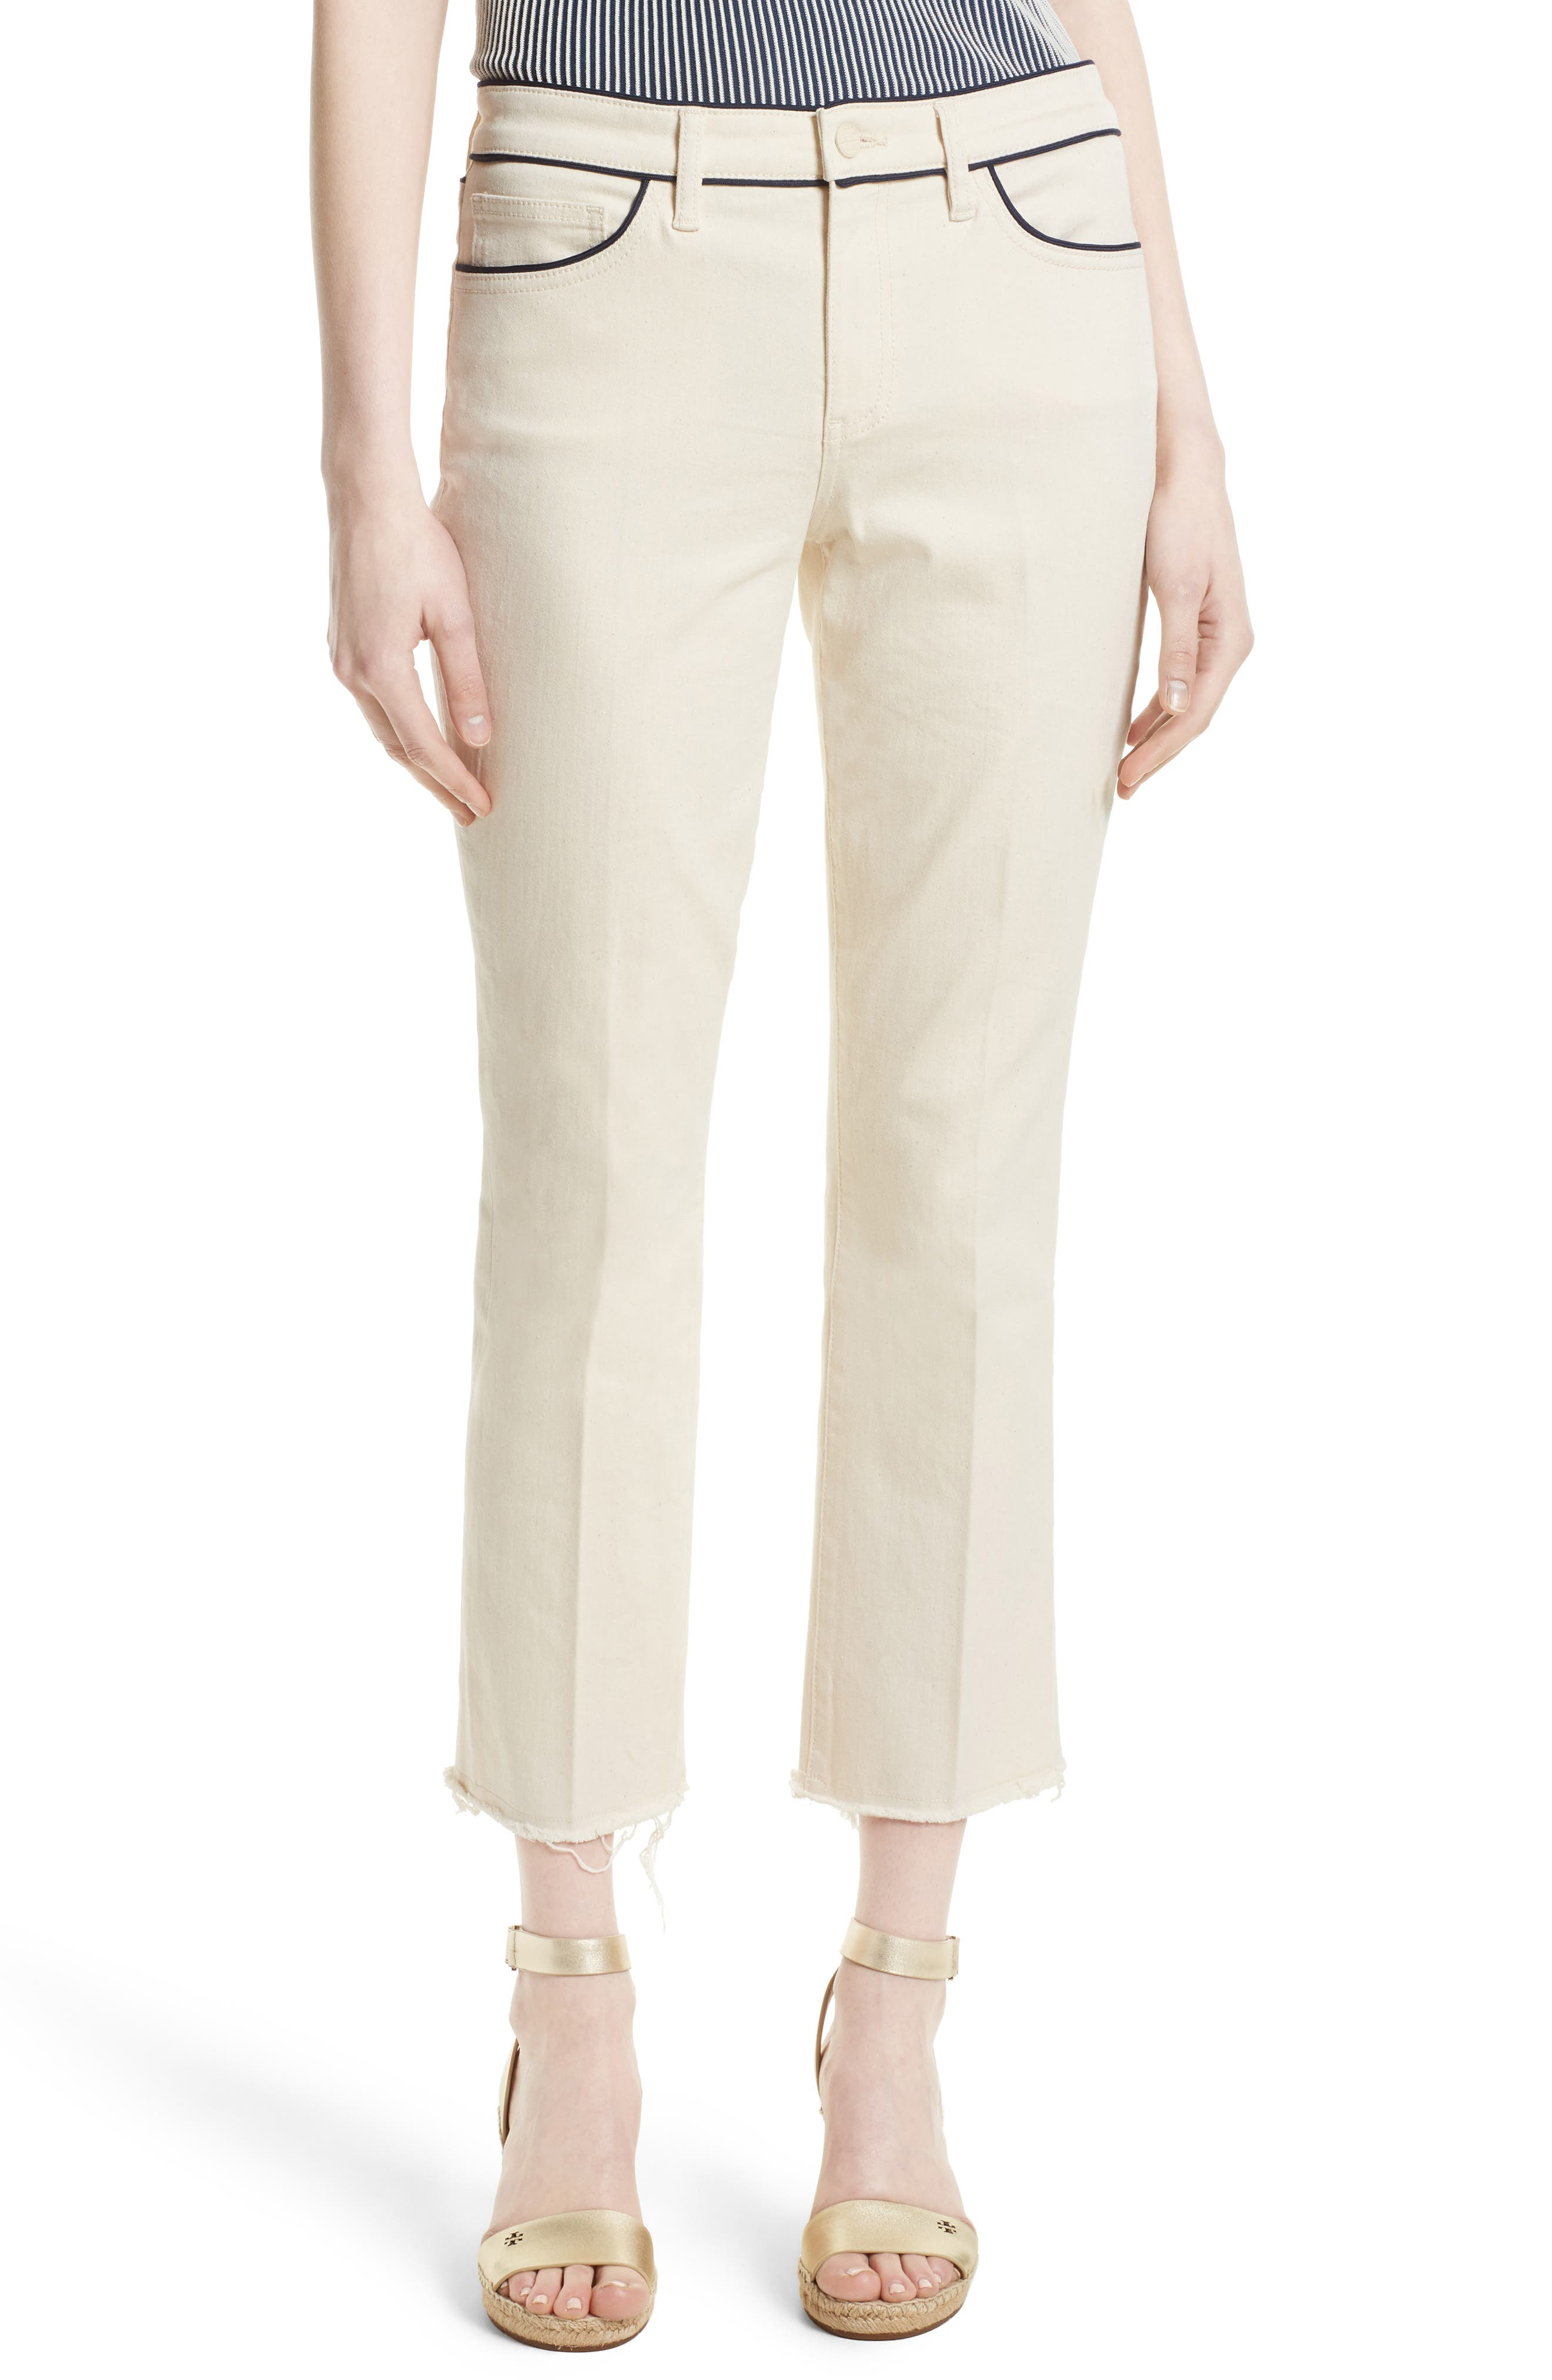 Tory Burch Piped Crop Jeans